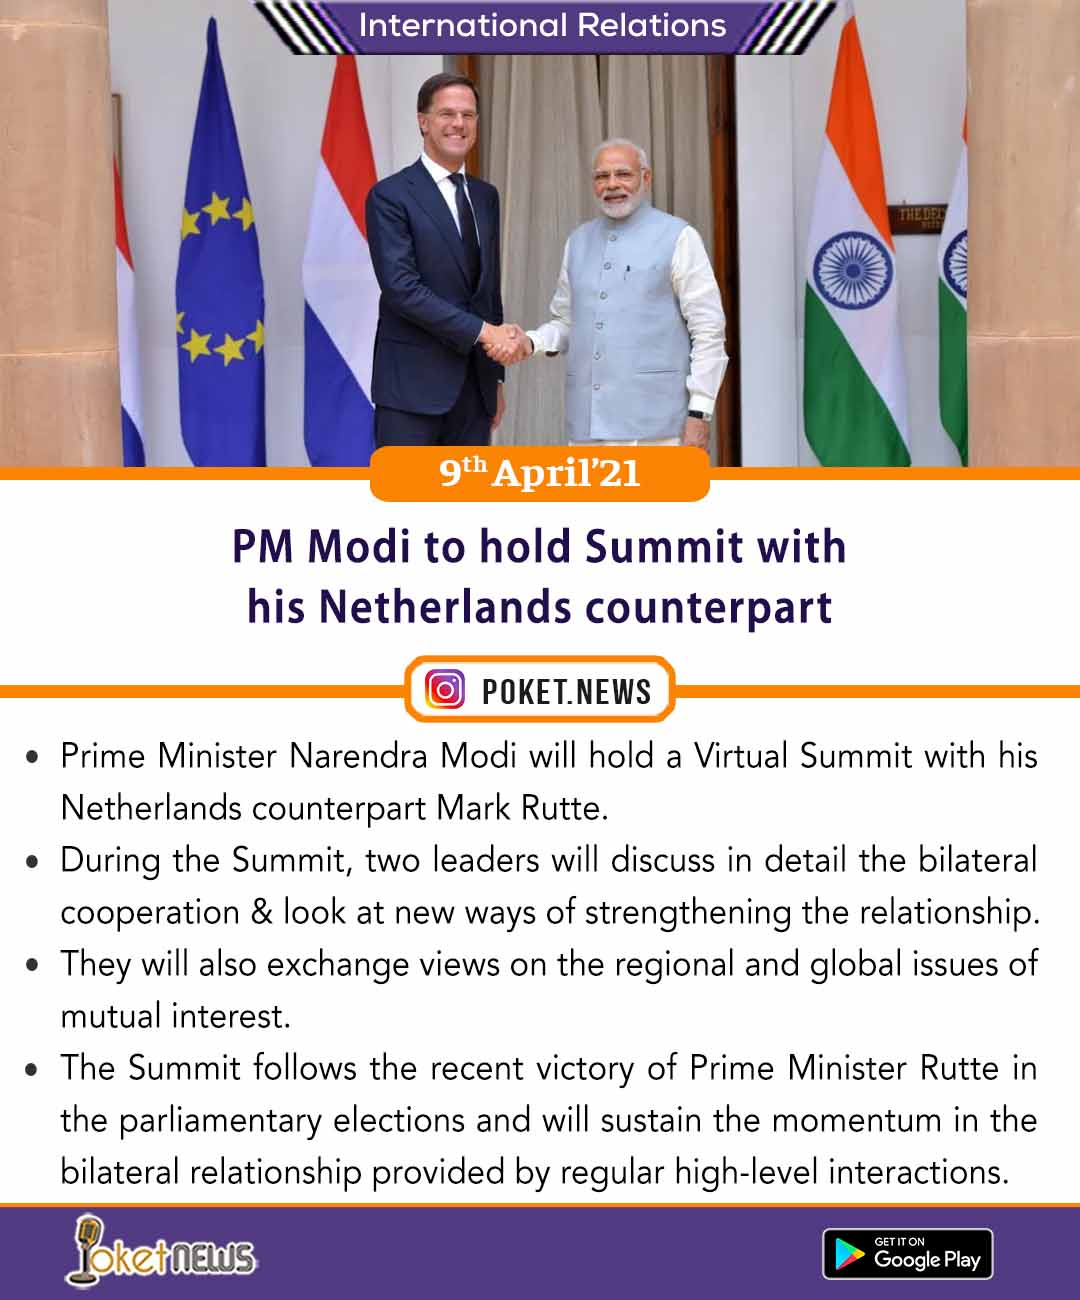 PM Modi to hold Summit with his Netherlands counterpart